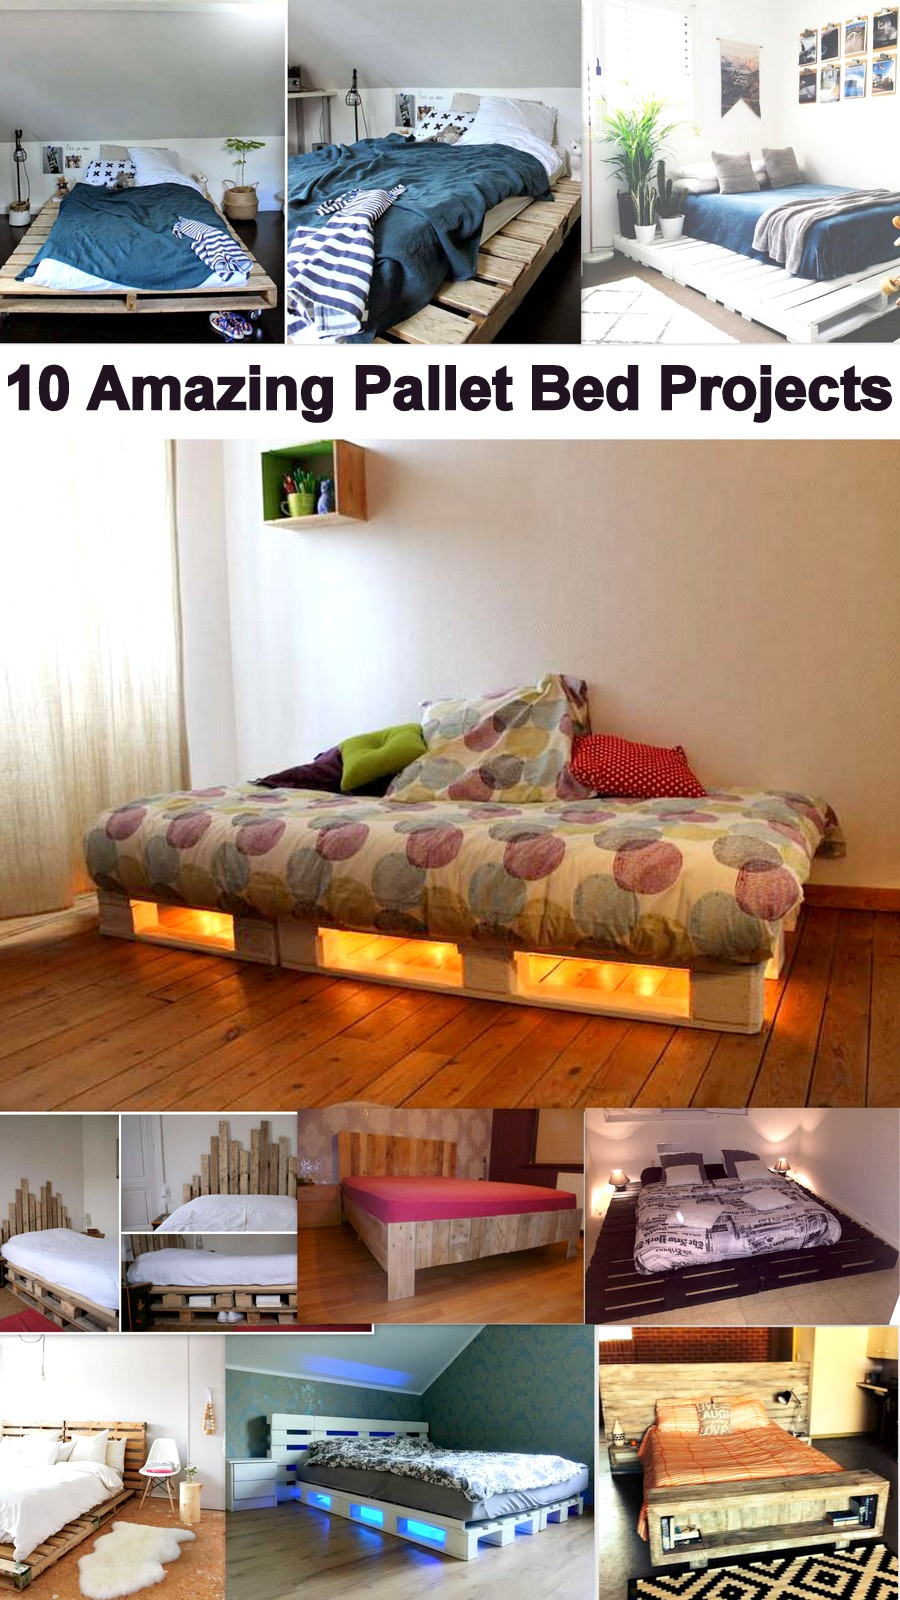 10 Amazing Pallet Bed Projects